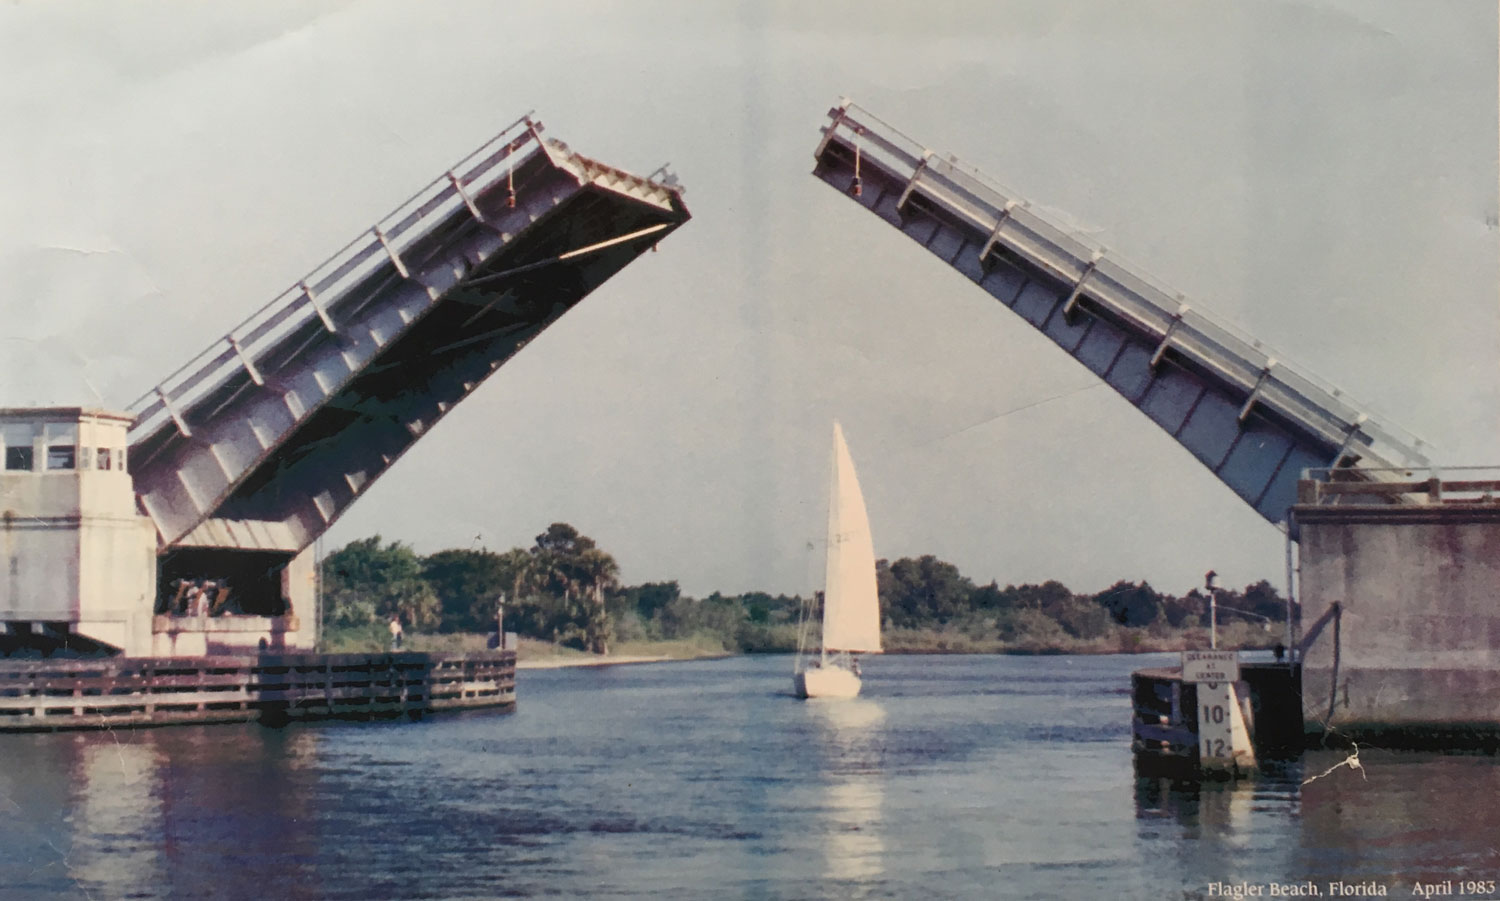 Remember the old Flagler Beach drawbridge? From 1983, courtesy of the Flagler Beach Museum and Commissioner Rick Belhumeur.